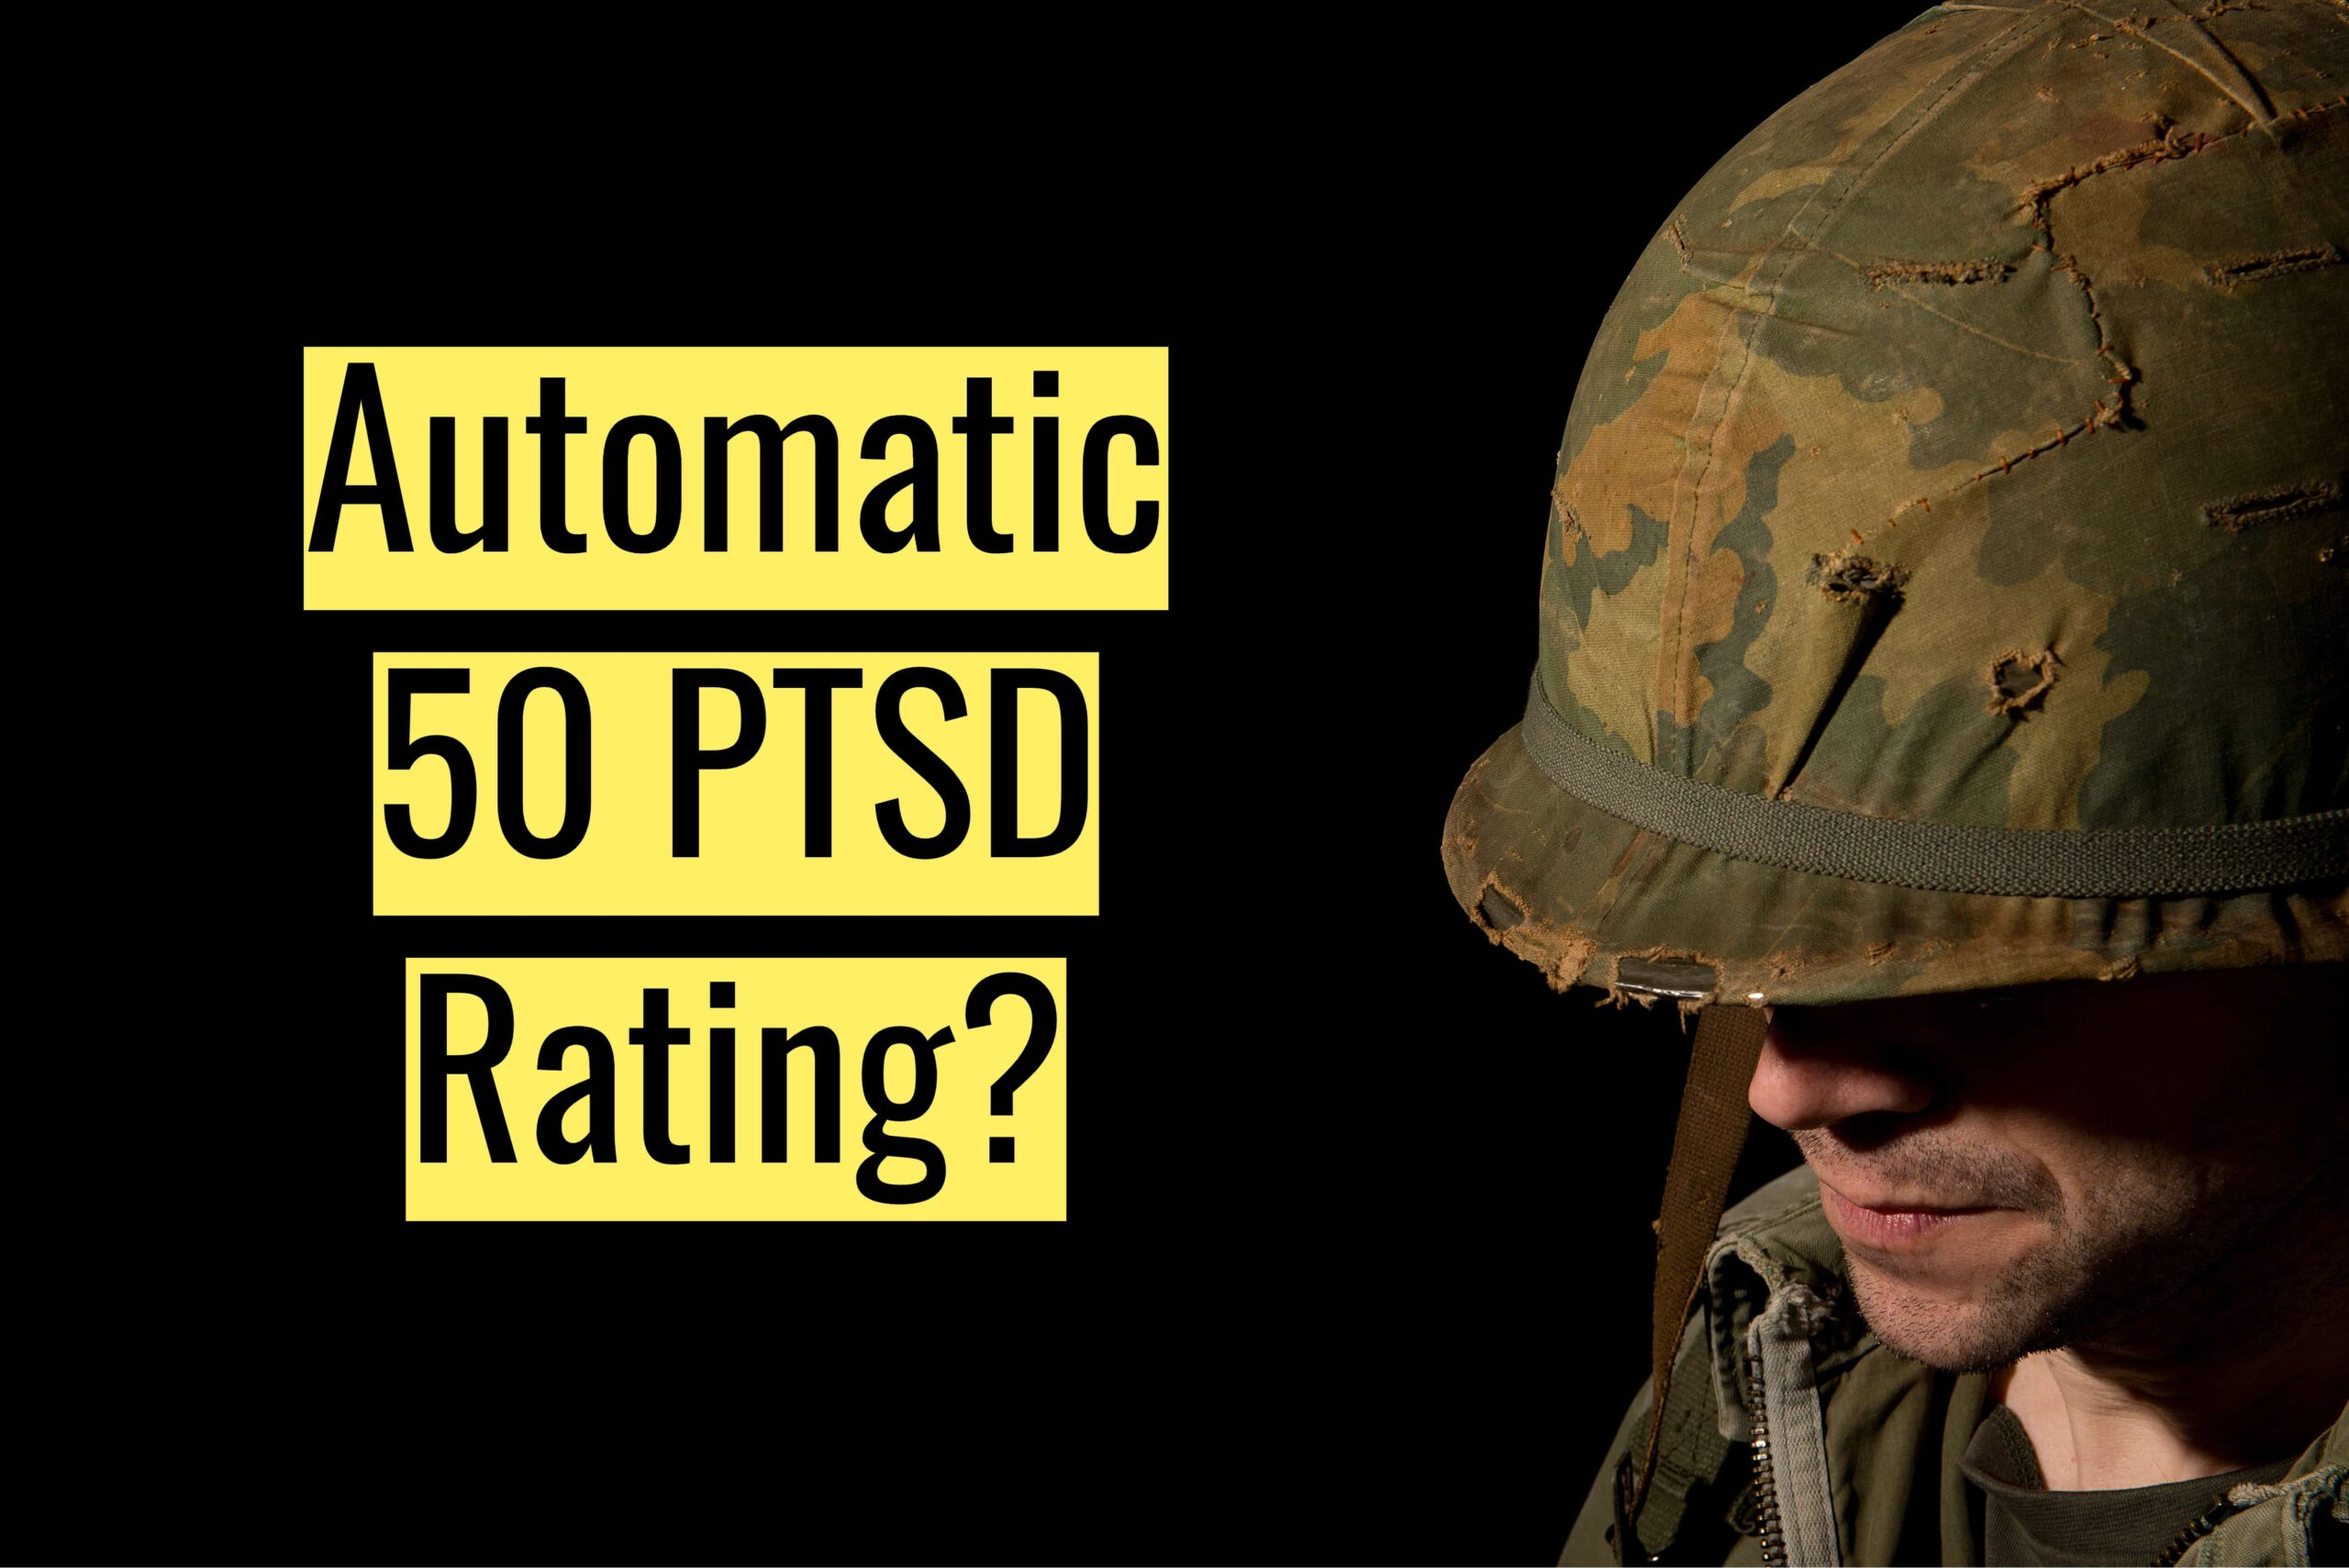 Automatic 50 PTSD Rating Explained Automatic 50 PTSD Rating